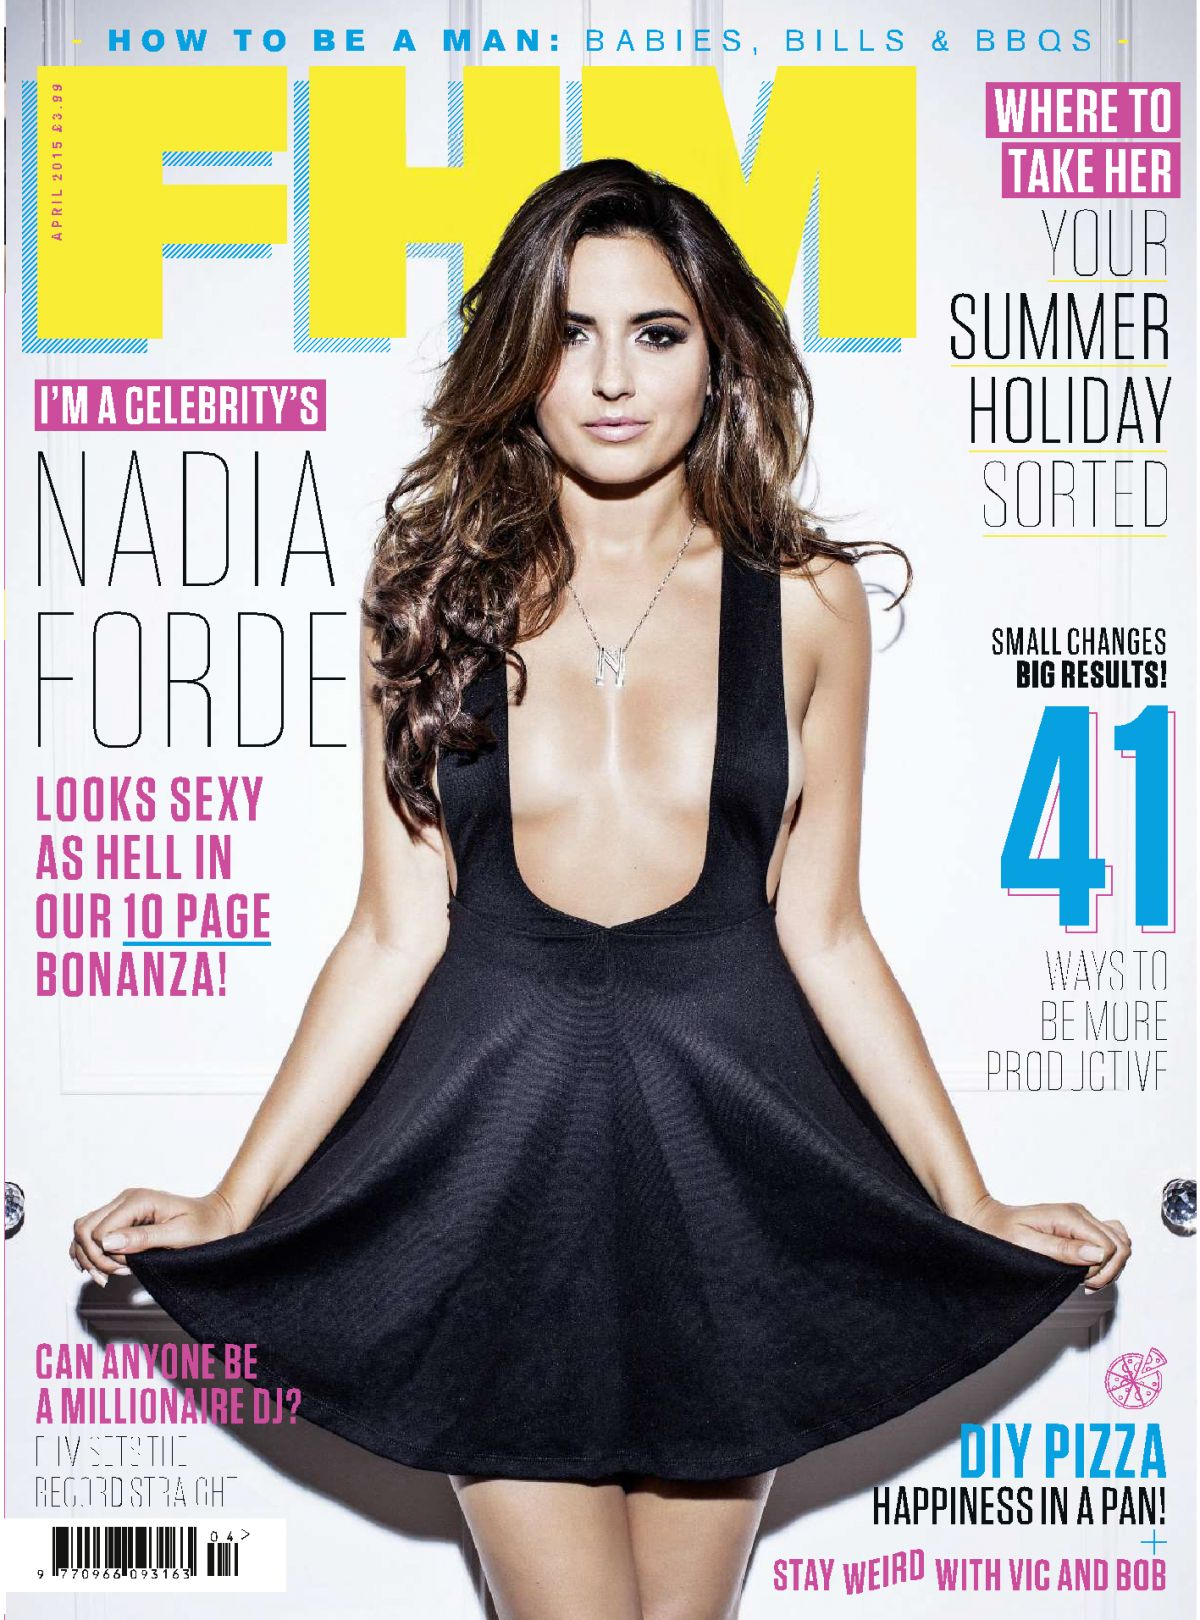 NADIA FORDE In FHM Magazine, April 2015 Issue